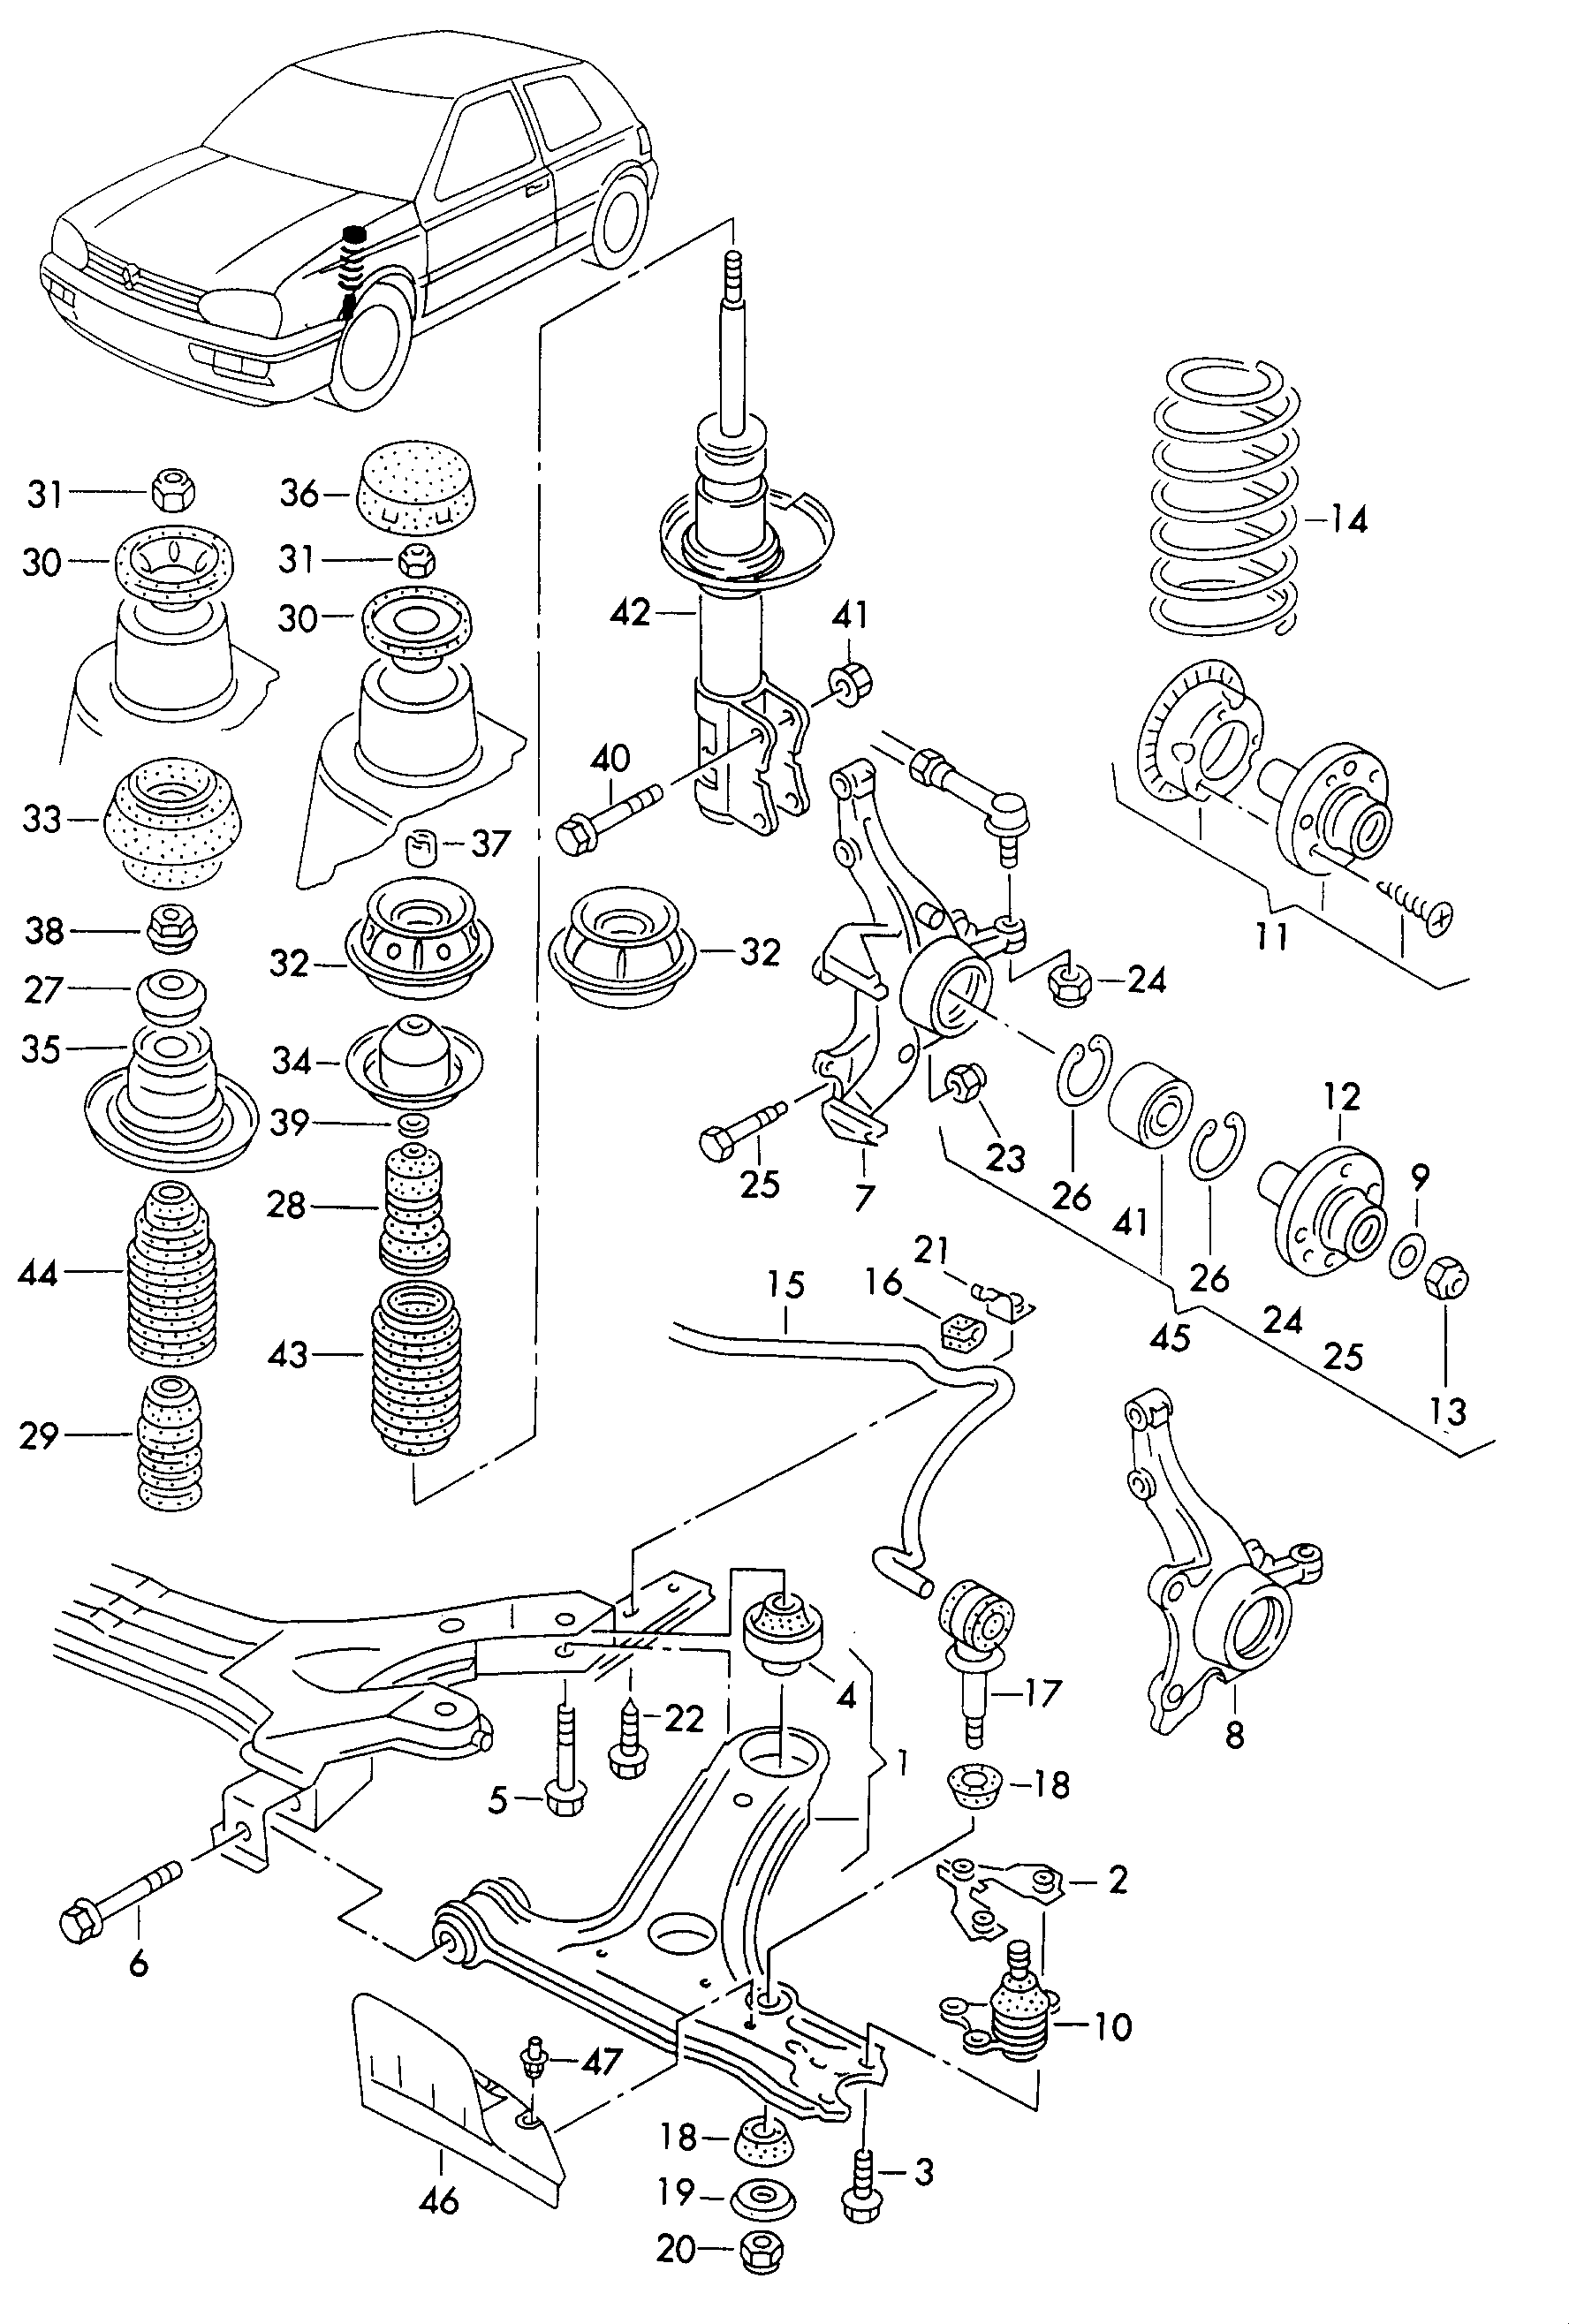 Vw Jetta Front Suspension Diagram, Vw, Free Engine Image